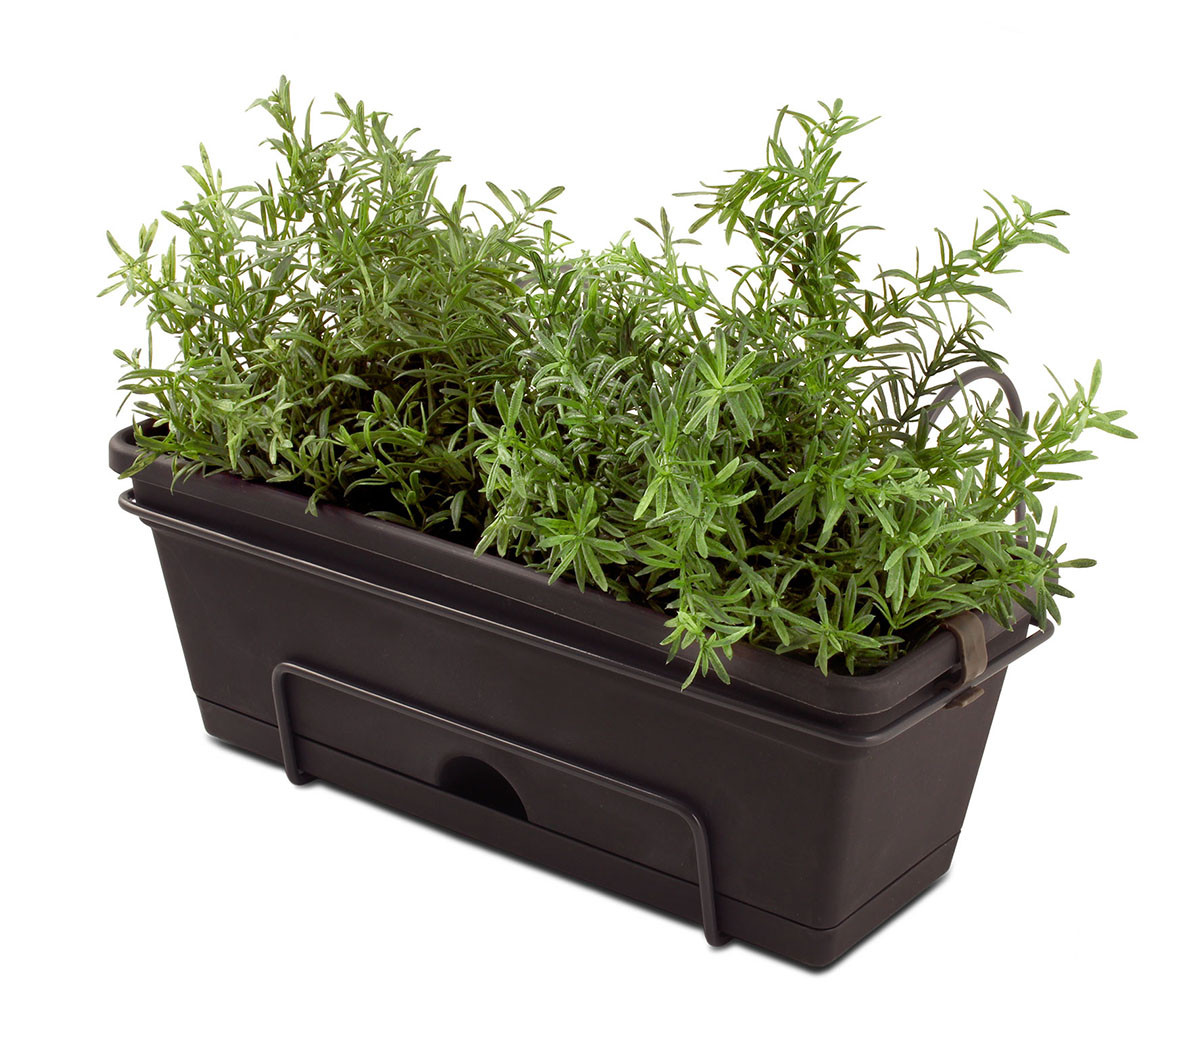 18420 Herb Planter Charcoal with herbs